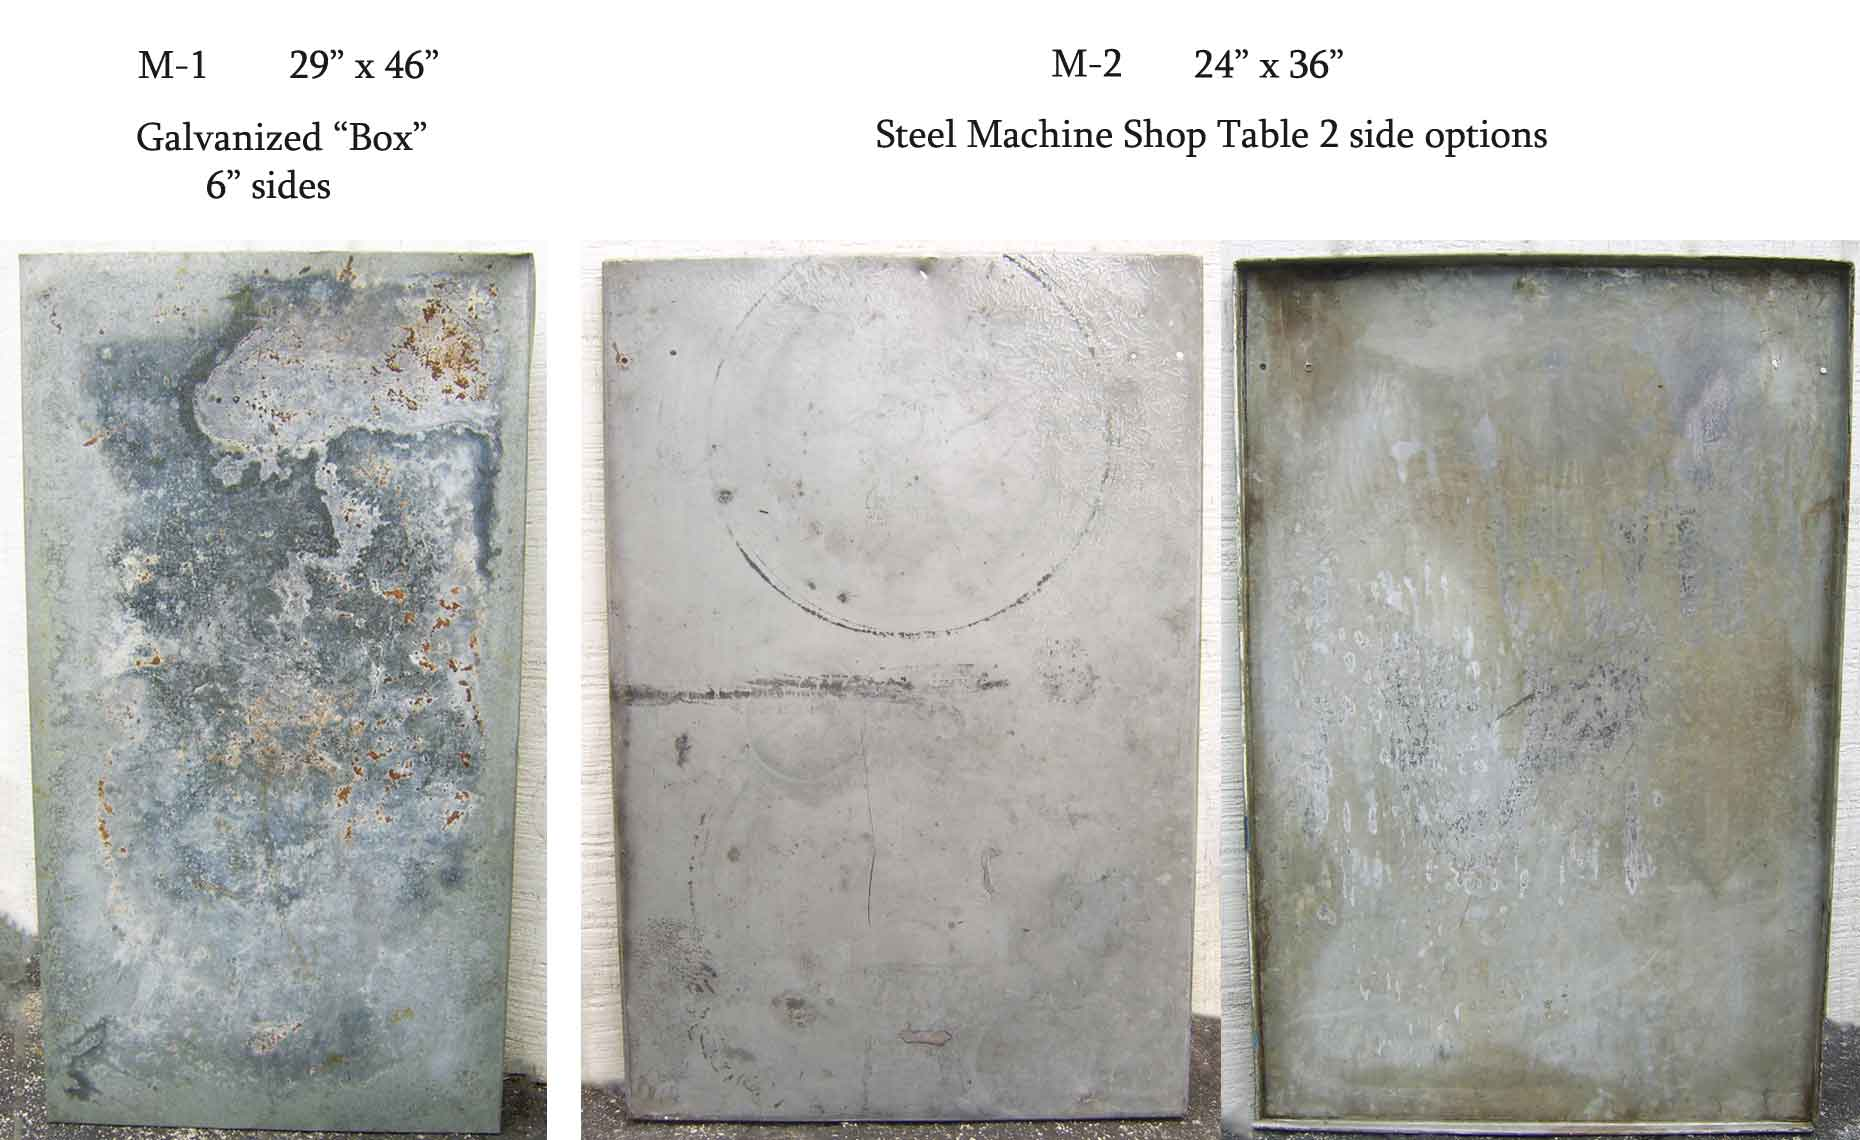 Distressed Metal Tables, Zinc Table, Aged Galvanized Metal Surface, Photo Backgrounds